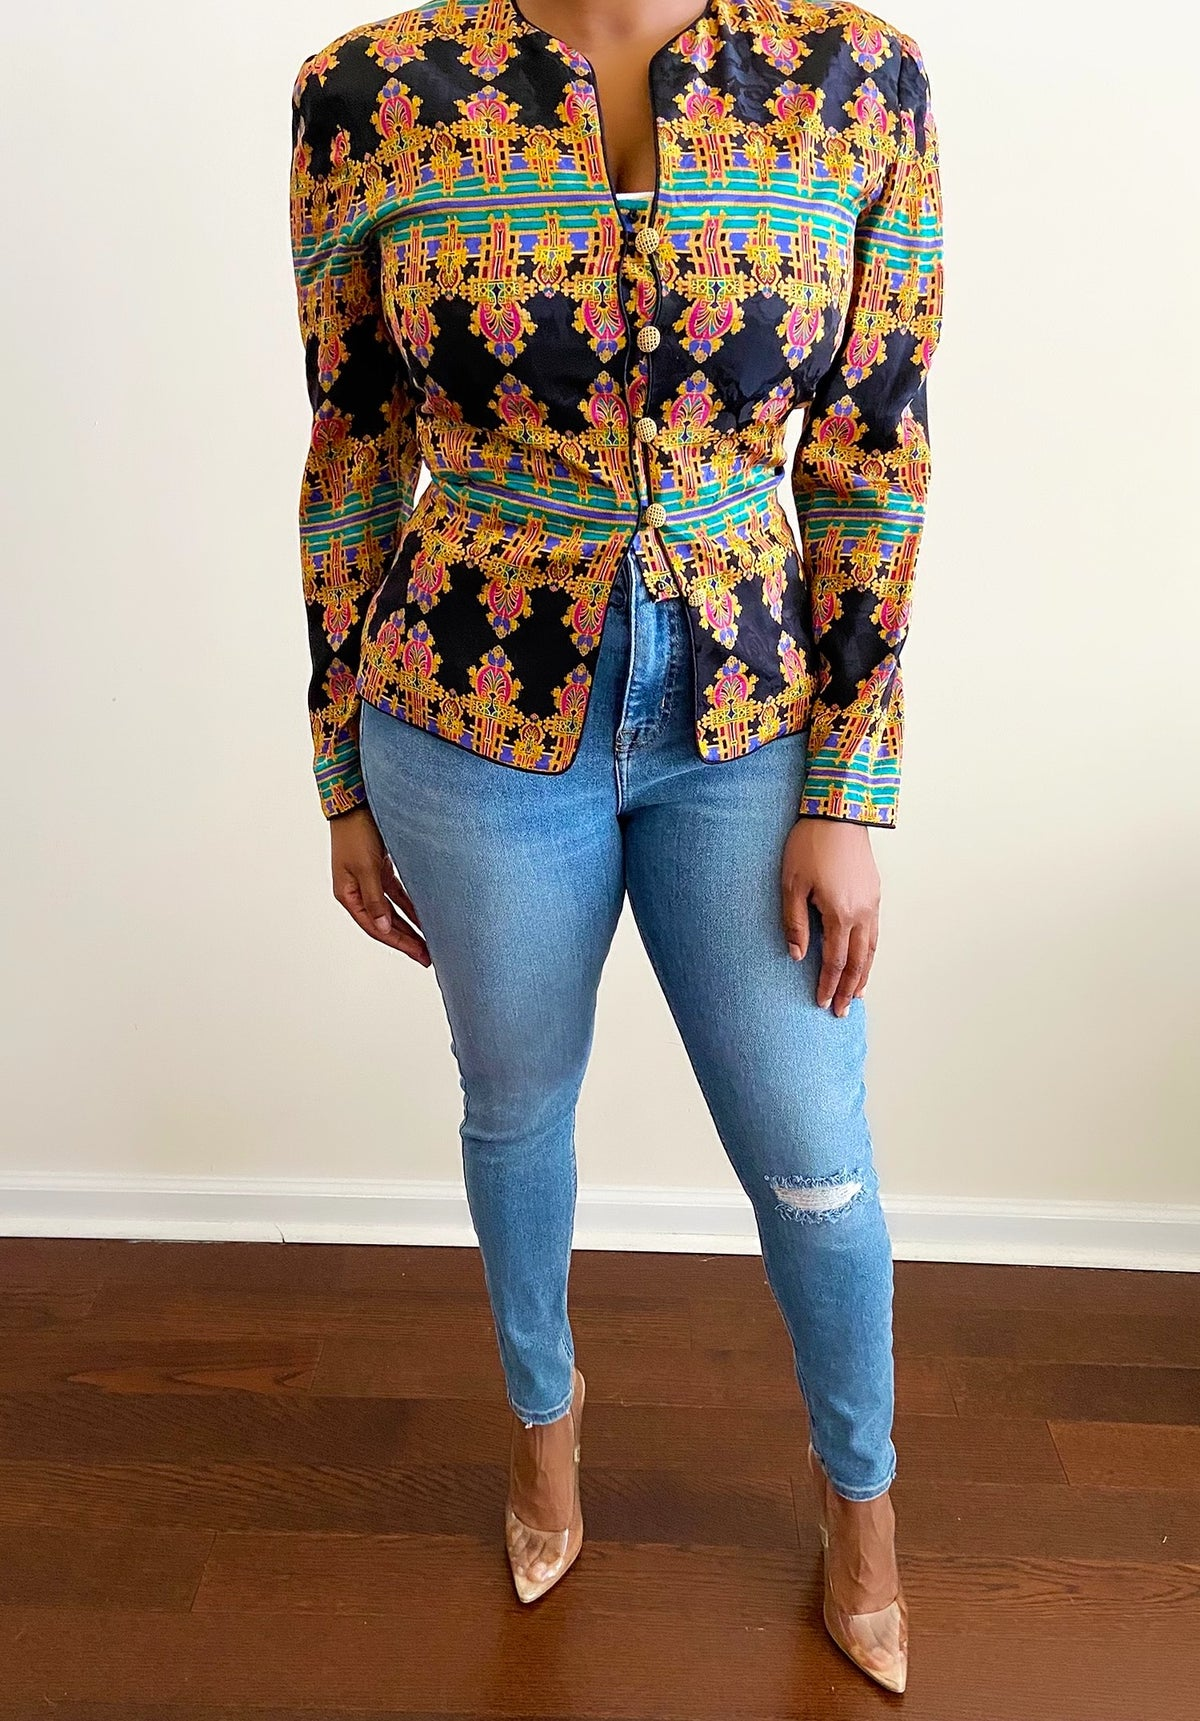 Image of Reconstructed Vibrant Print Fitted Blazer - S/M